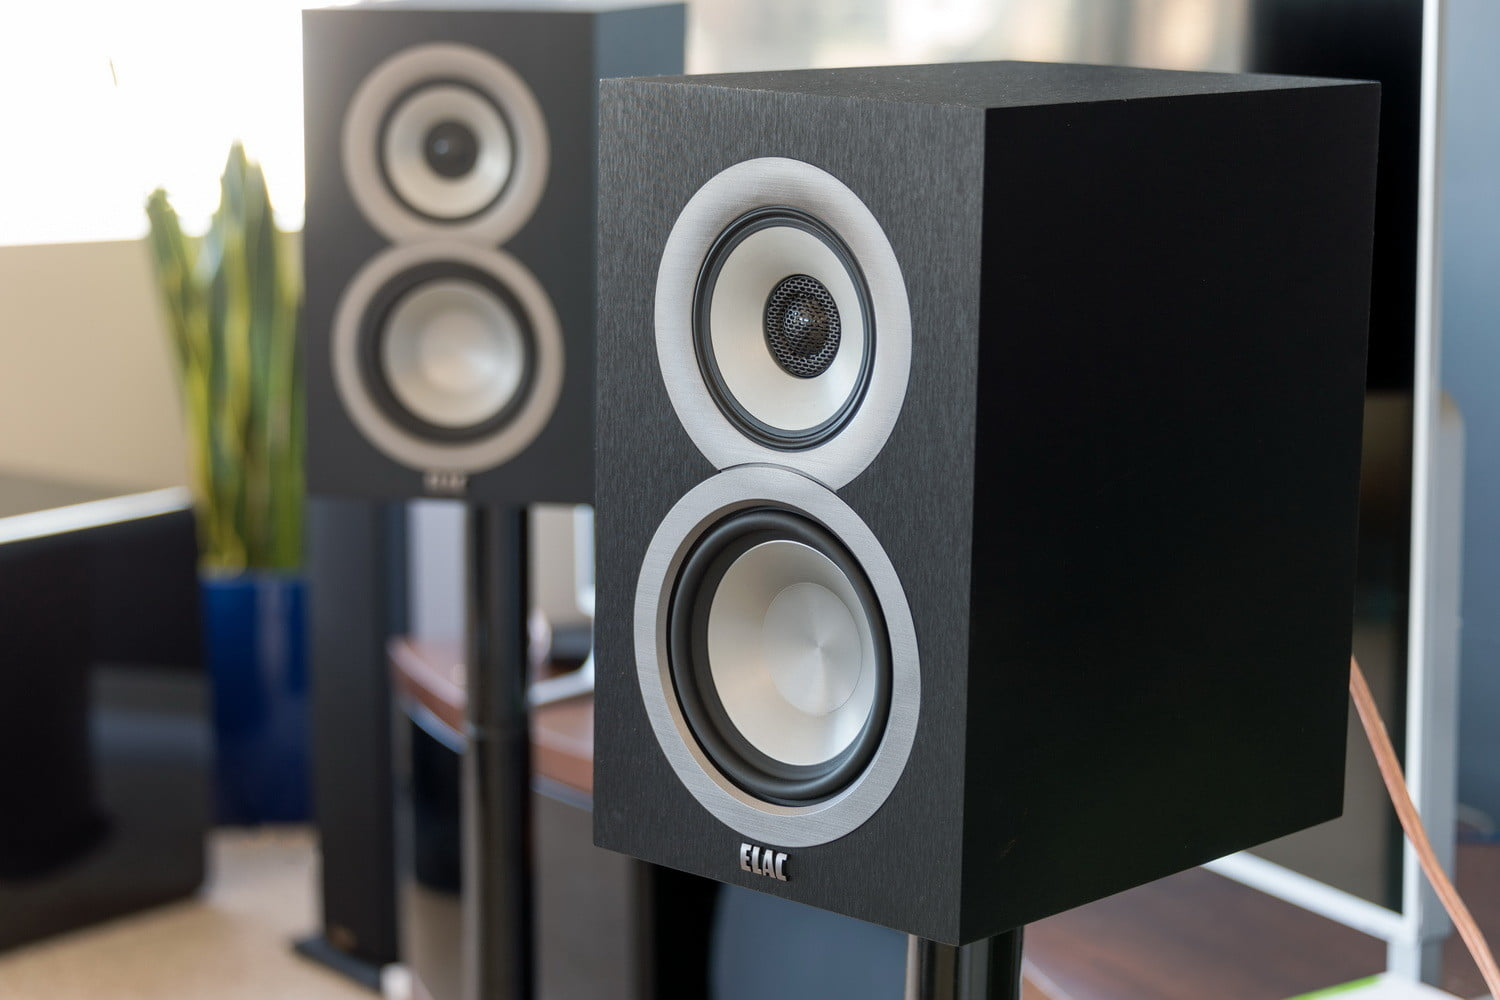 Speaker Equipment The Best Speakers For 2019 Digital Trends